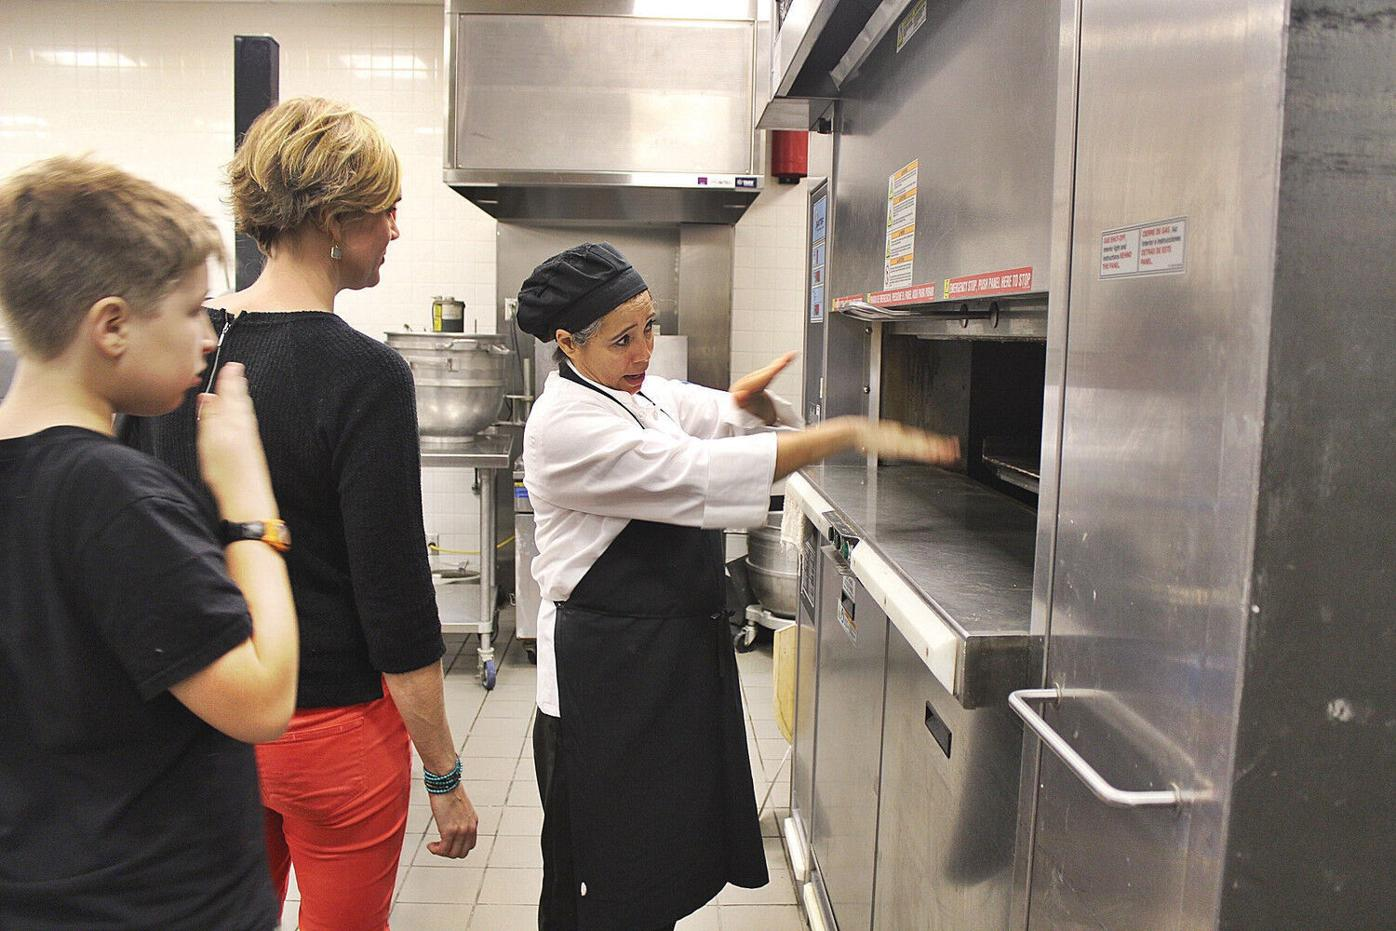 At Williams College, a cooking show set to music